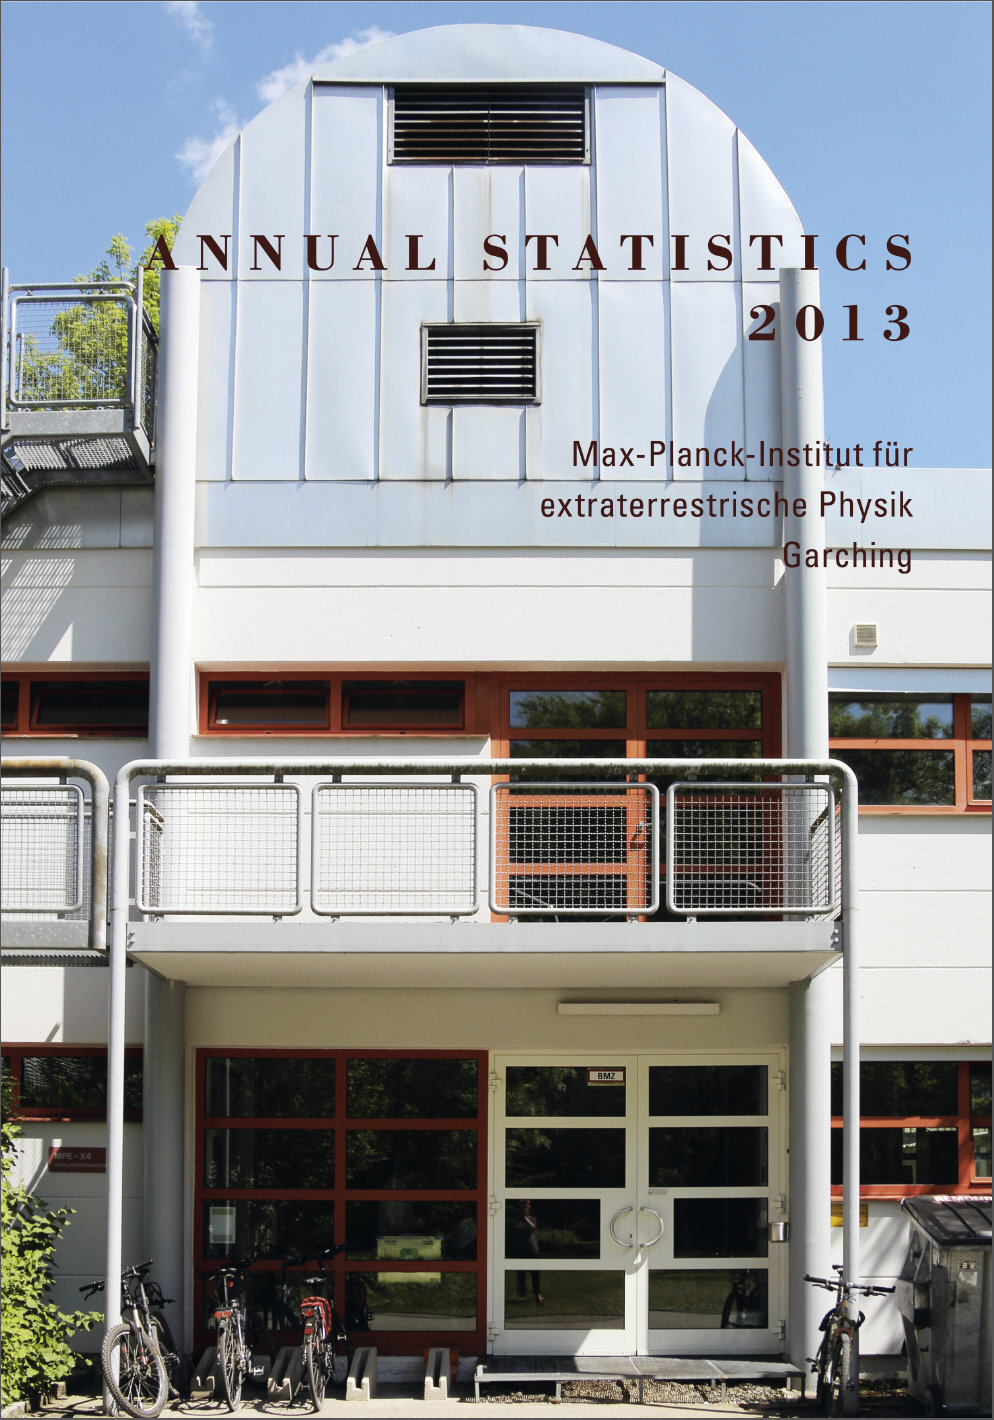 Complete annual statistics of 2013 including the publication lists.